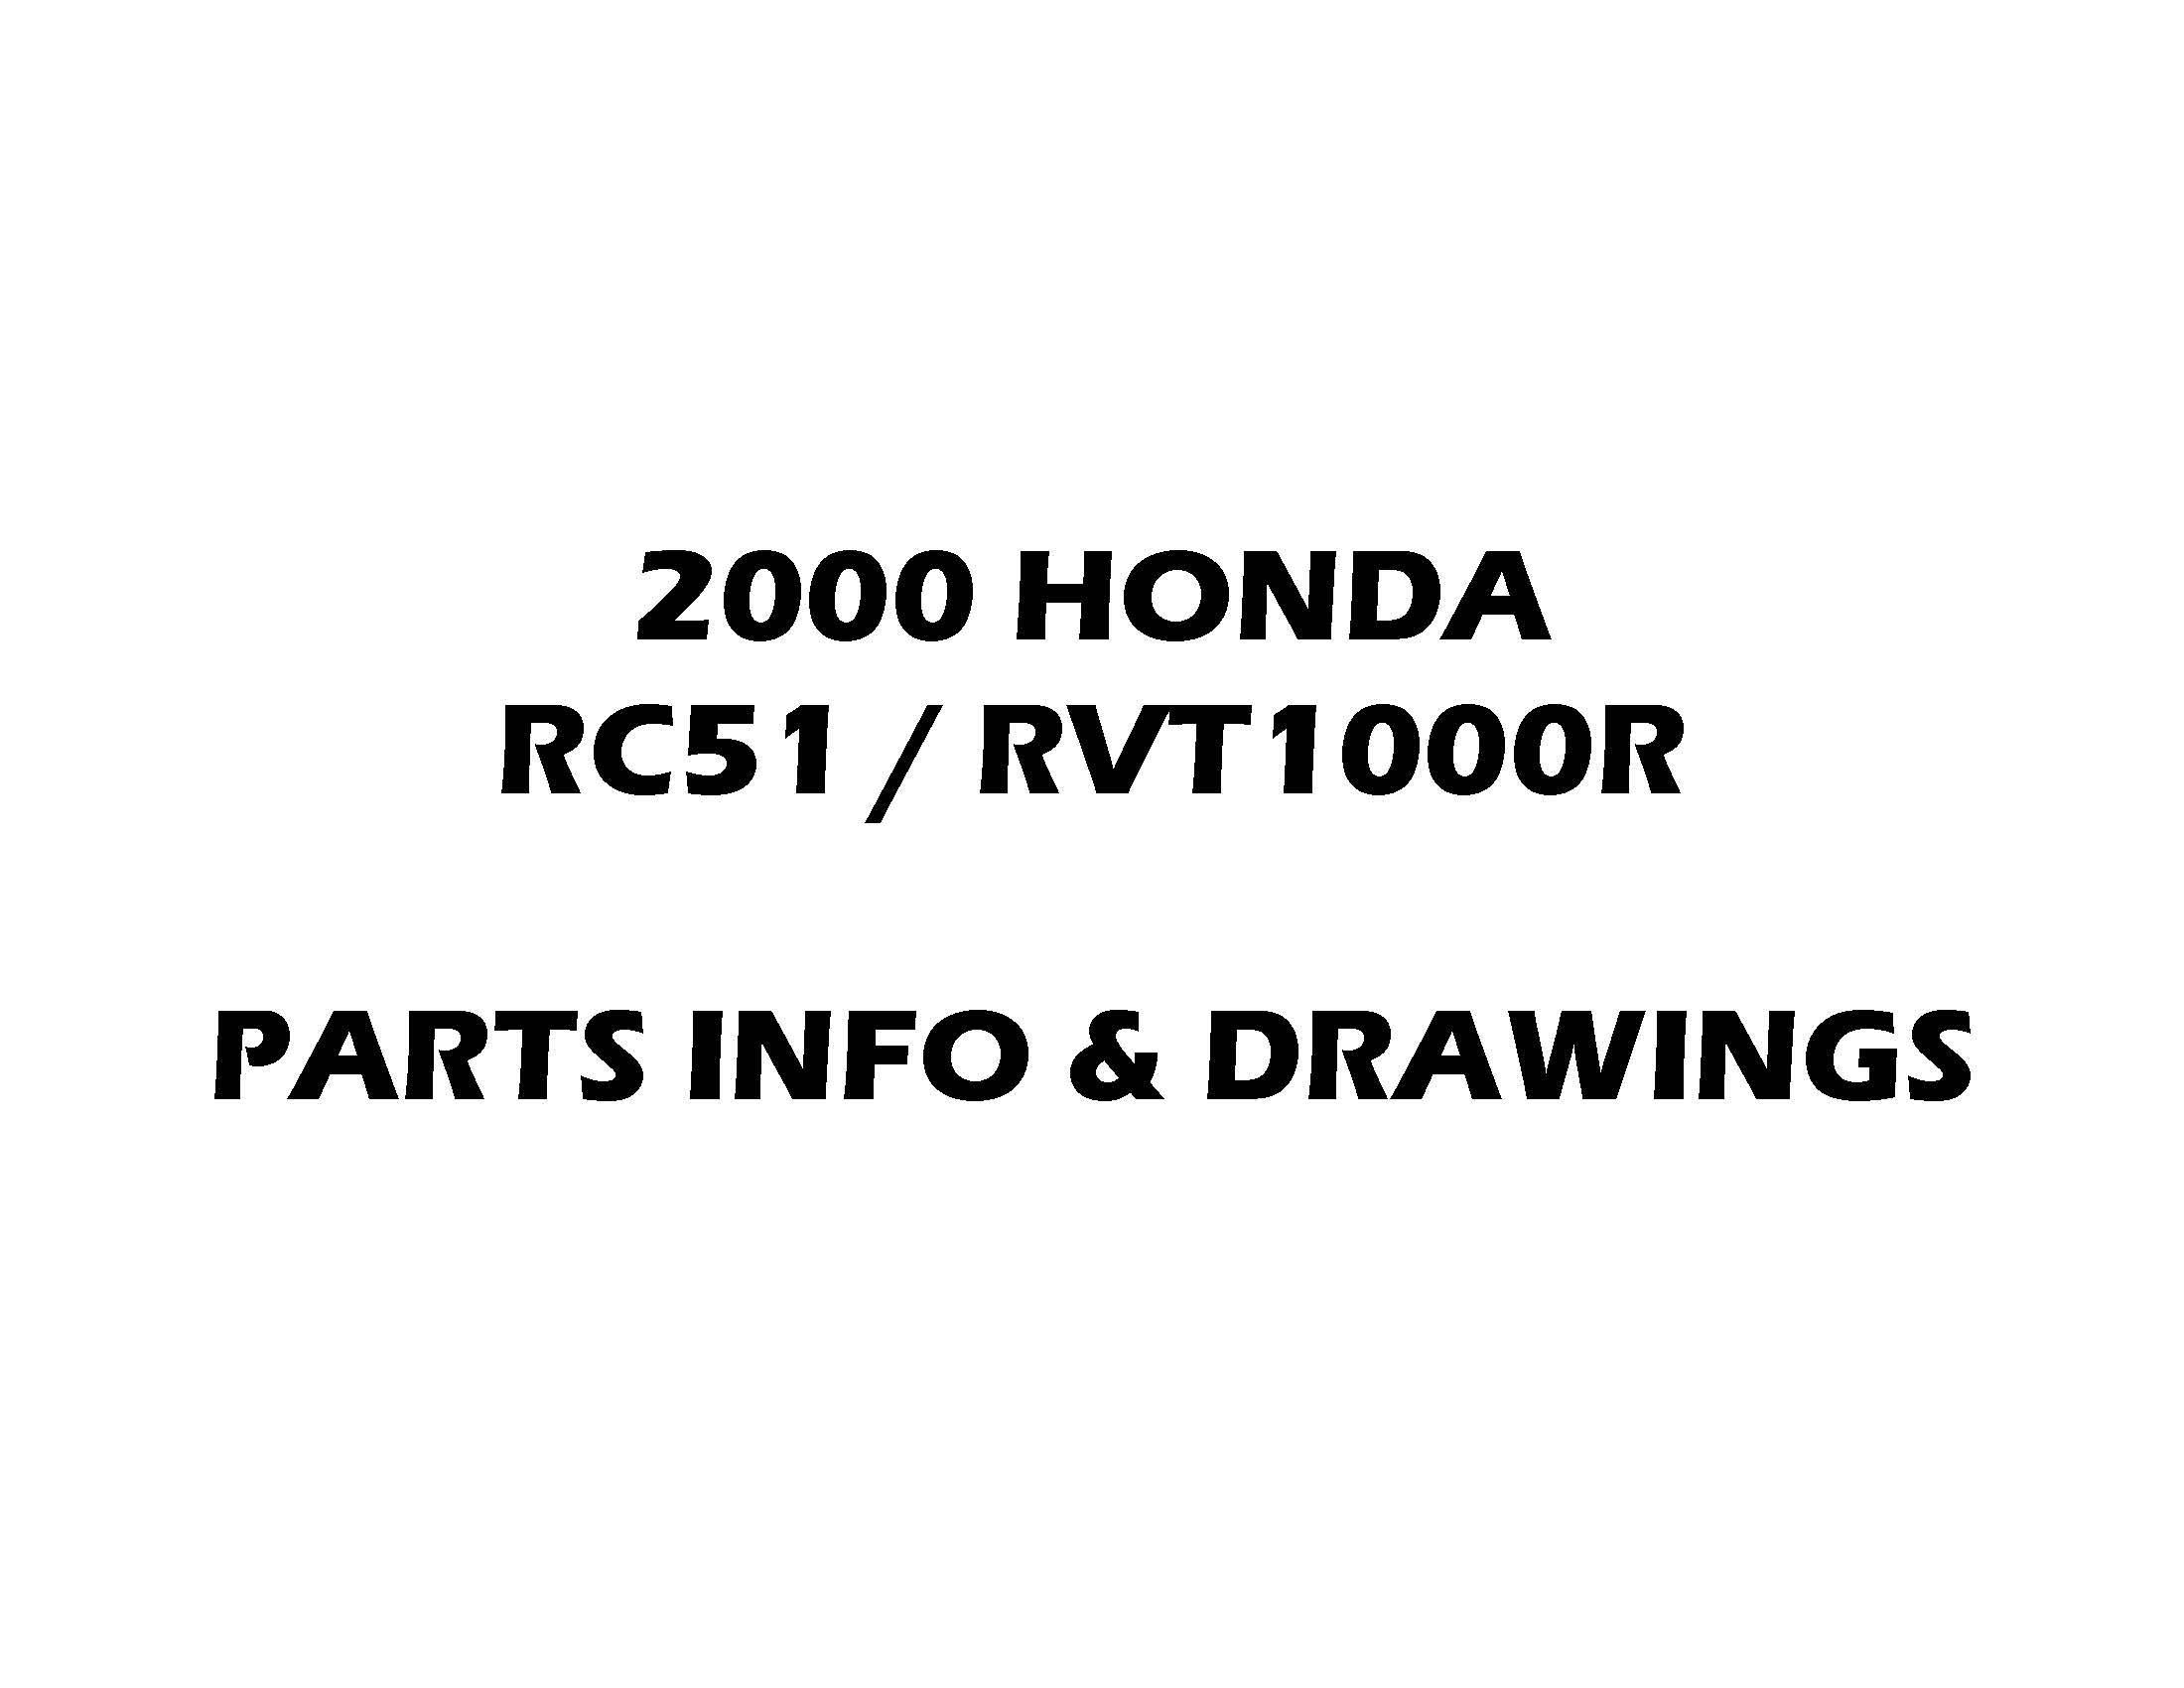 Parts list for Honda RC51/RVT1000R (2000)